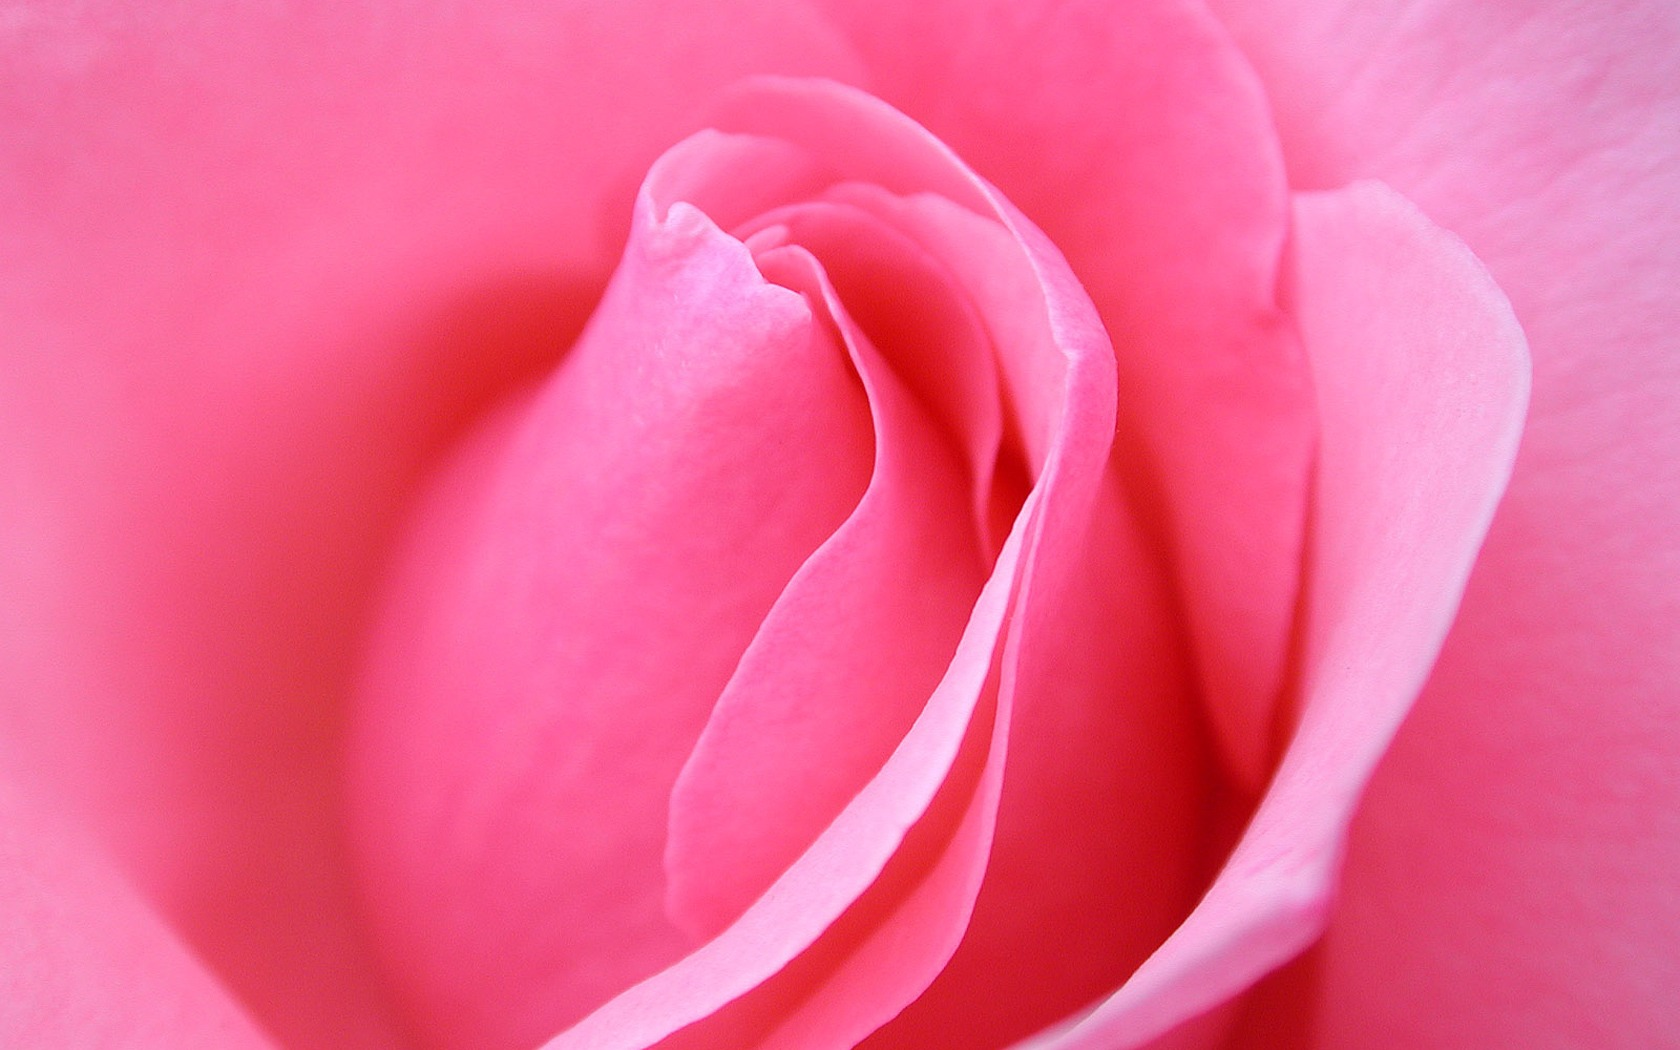 Pink rose macro wallpaper flowers nature wallpapers in jpg format pink rose macro wallpaper flowers nature wallpapers mightylinksfo